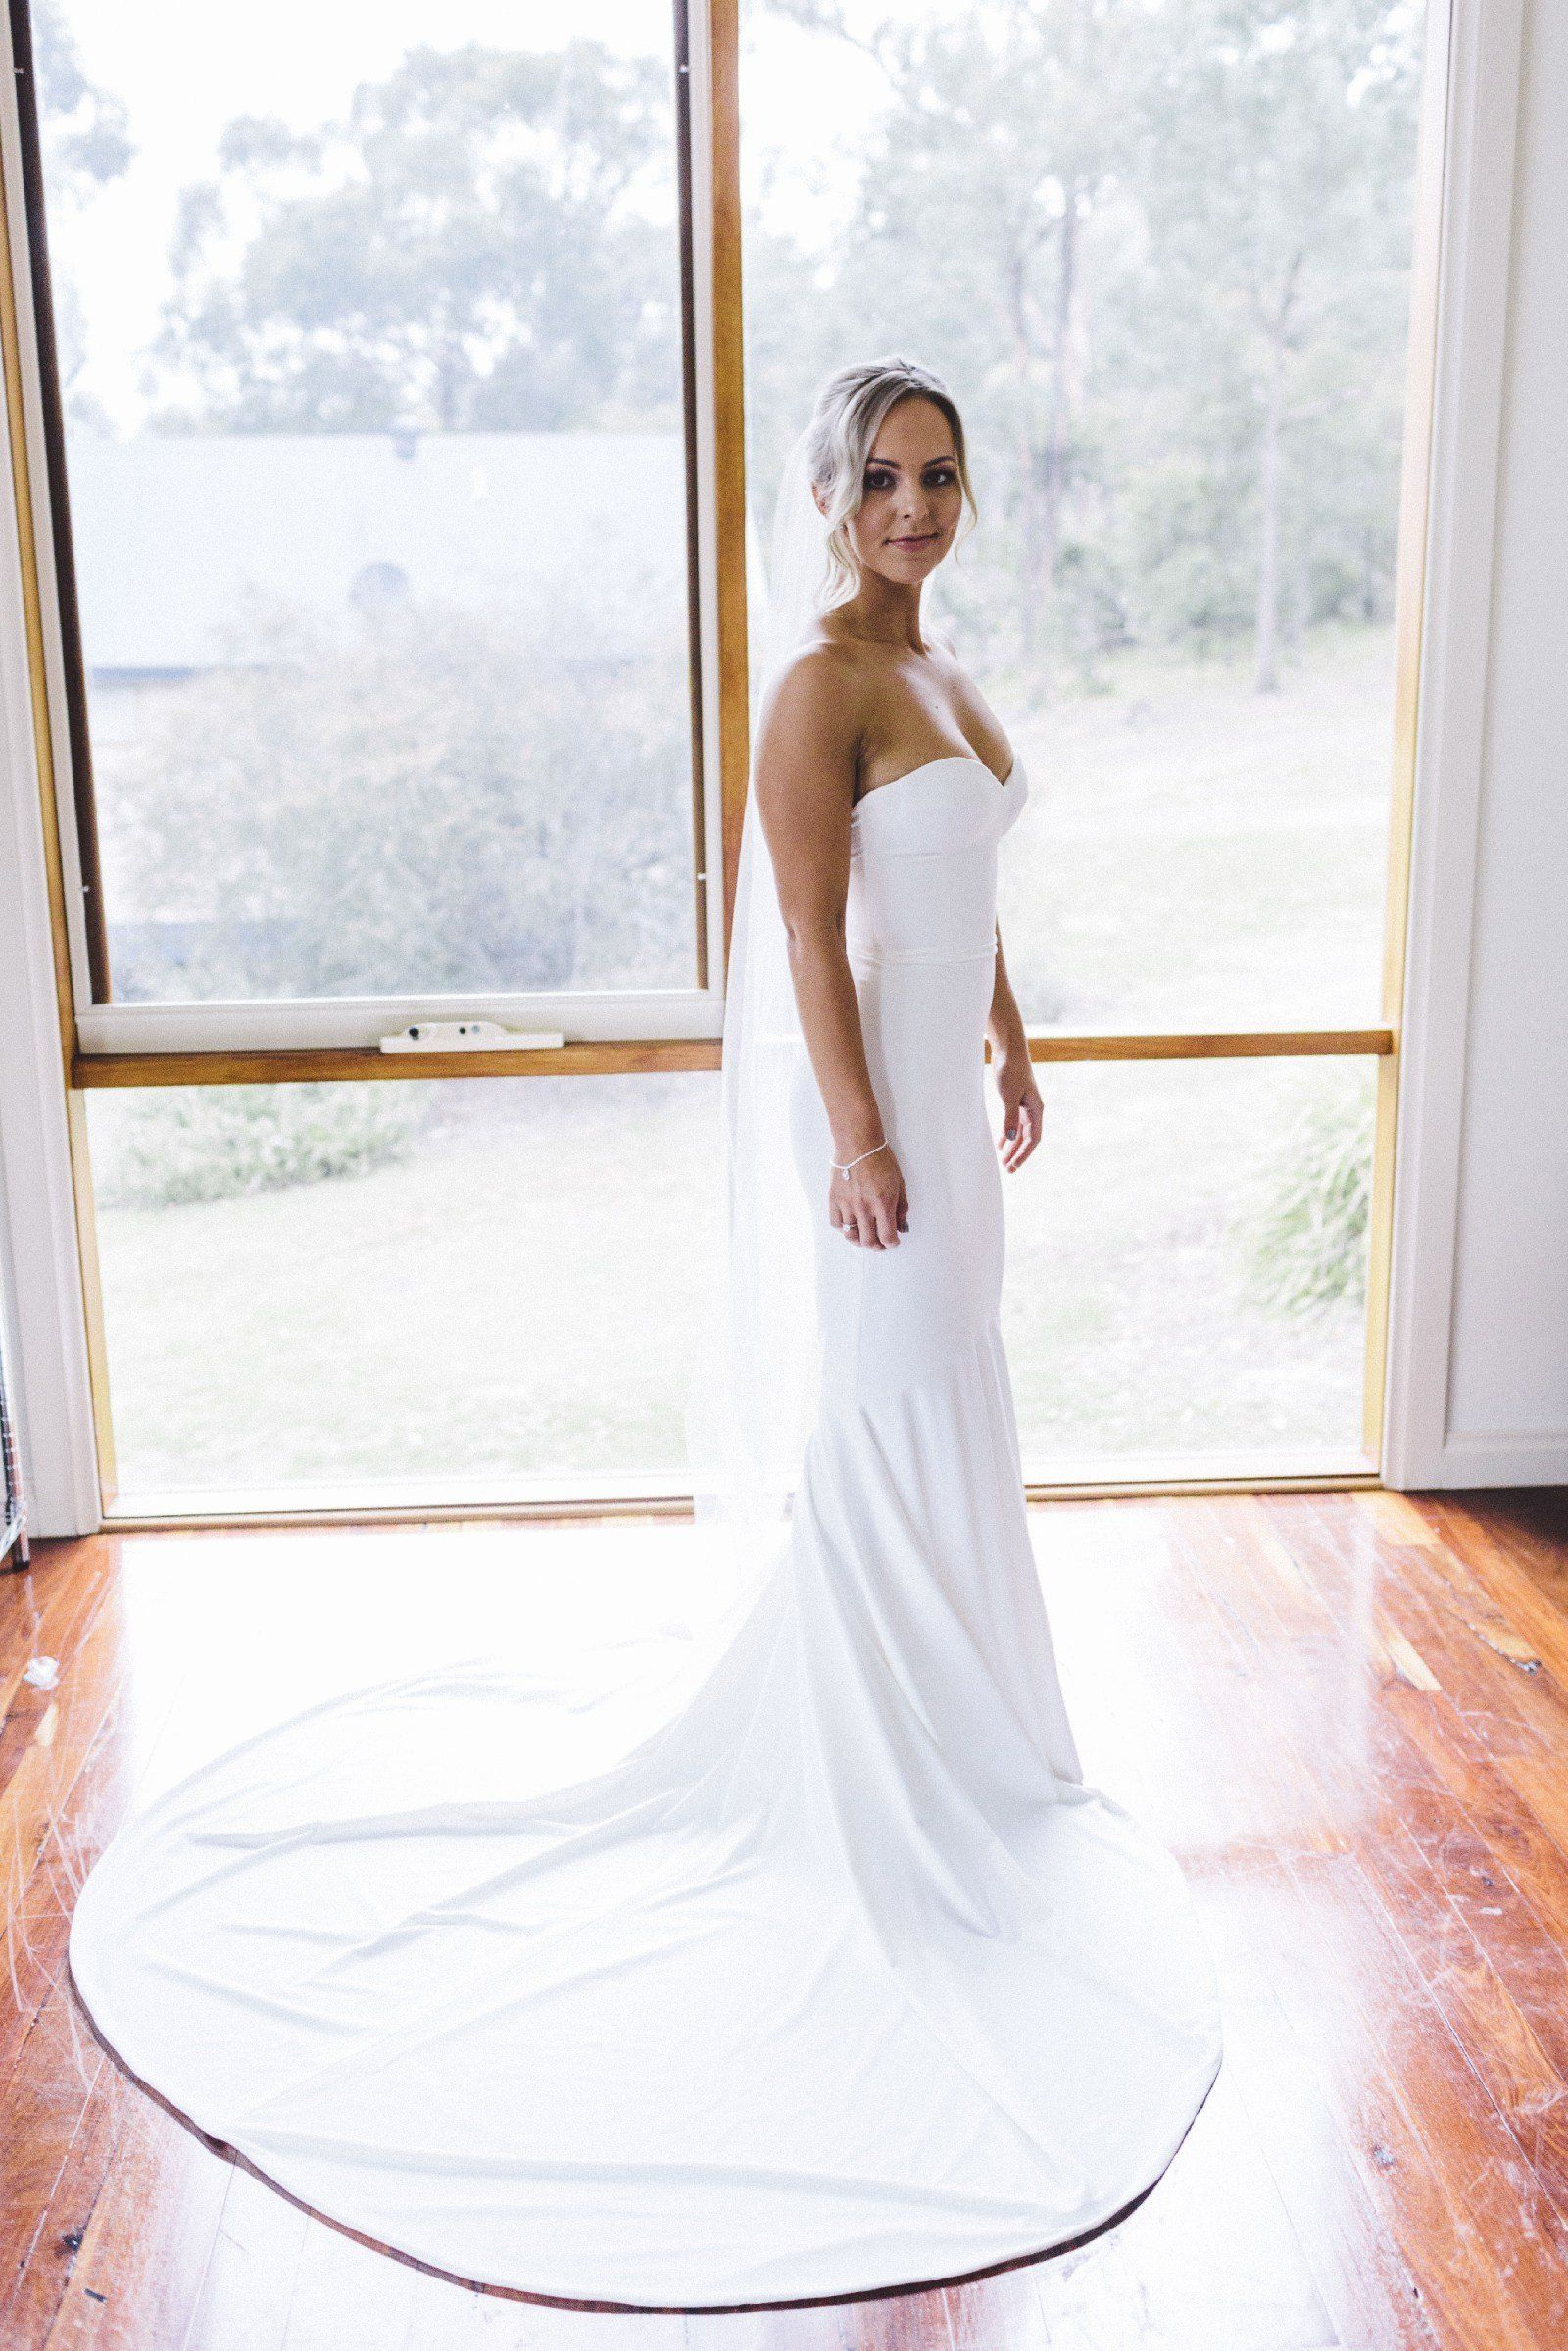 Wedding Dress Dry Cleaning Near Me Luxury Fit Flare Wedding Dress Sale F In 2020 Wedding Dresses Fit And Flare Wedding Dress Wedding Dresses For Sale